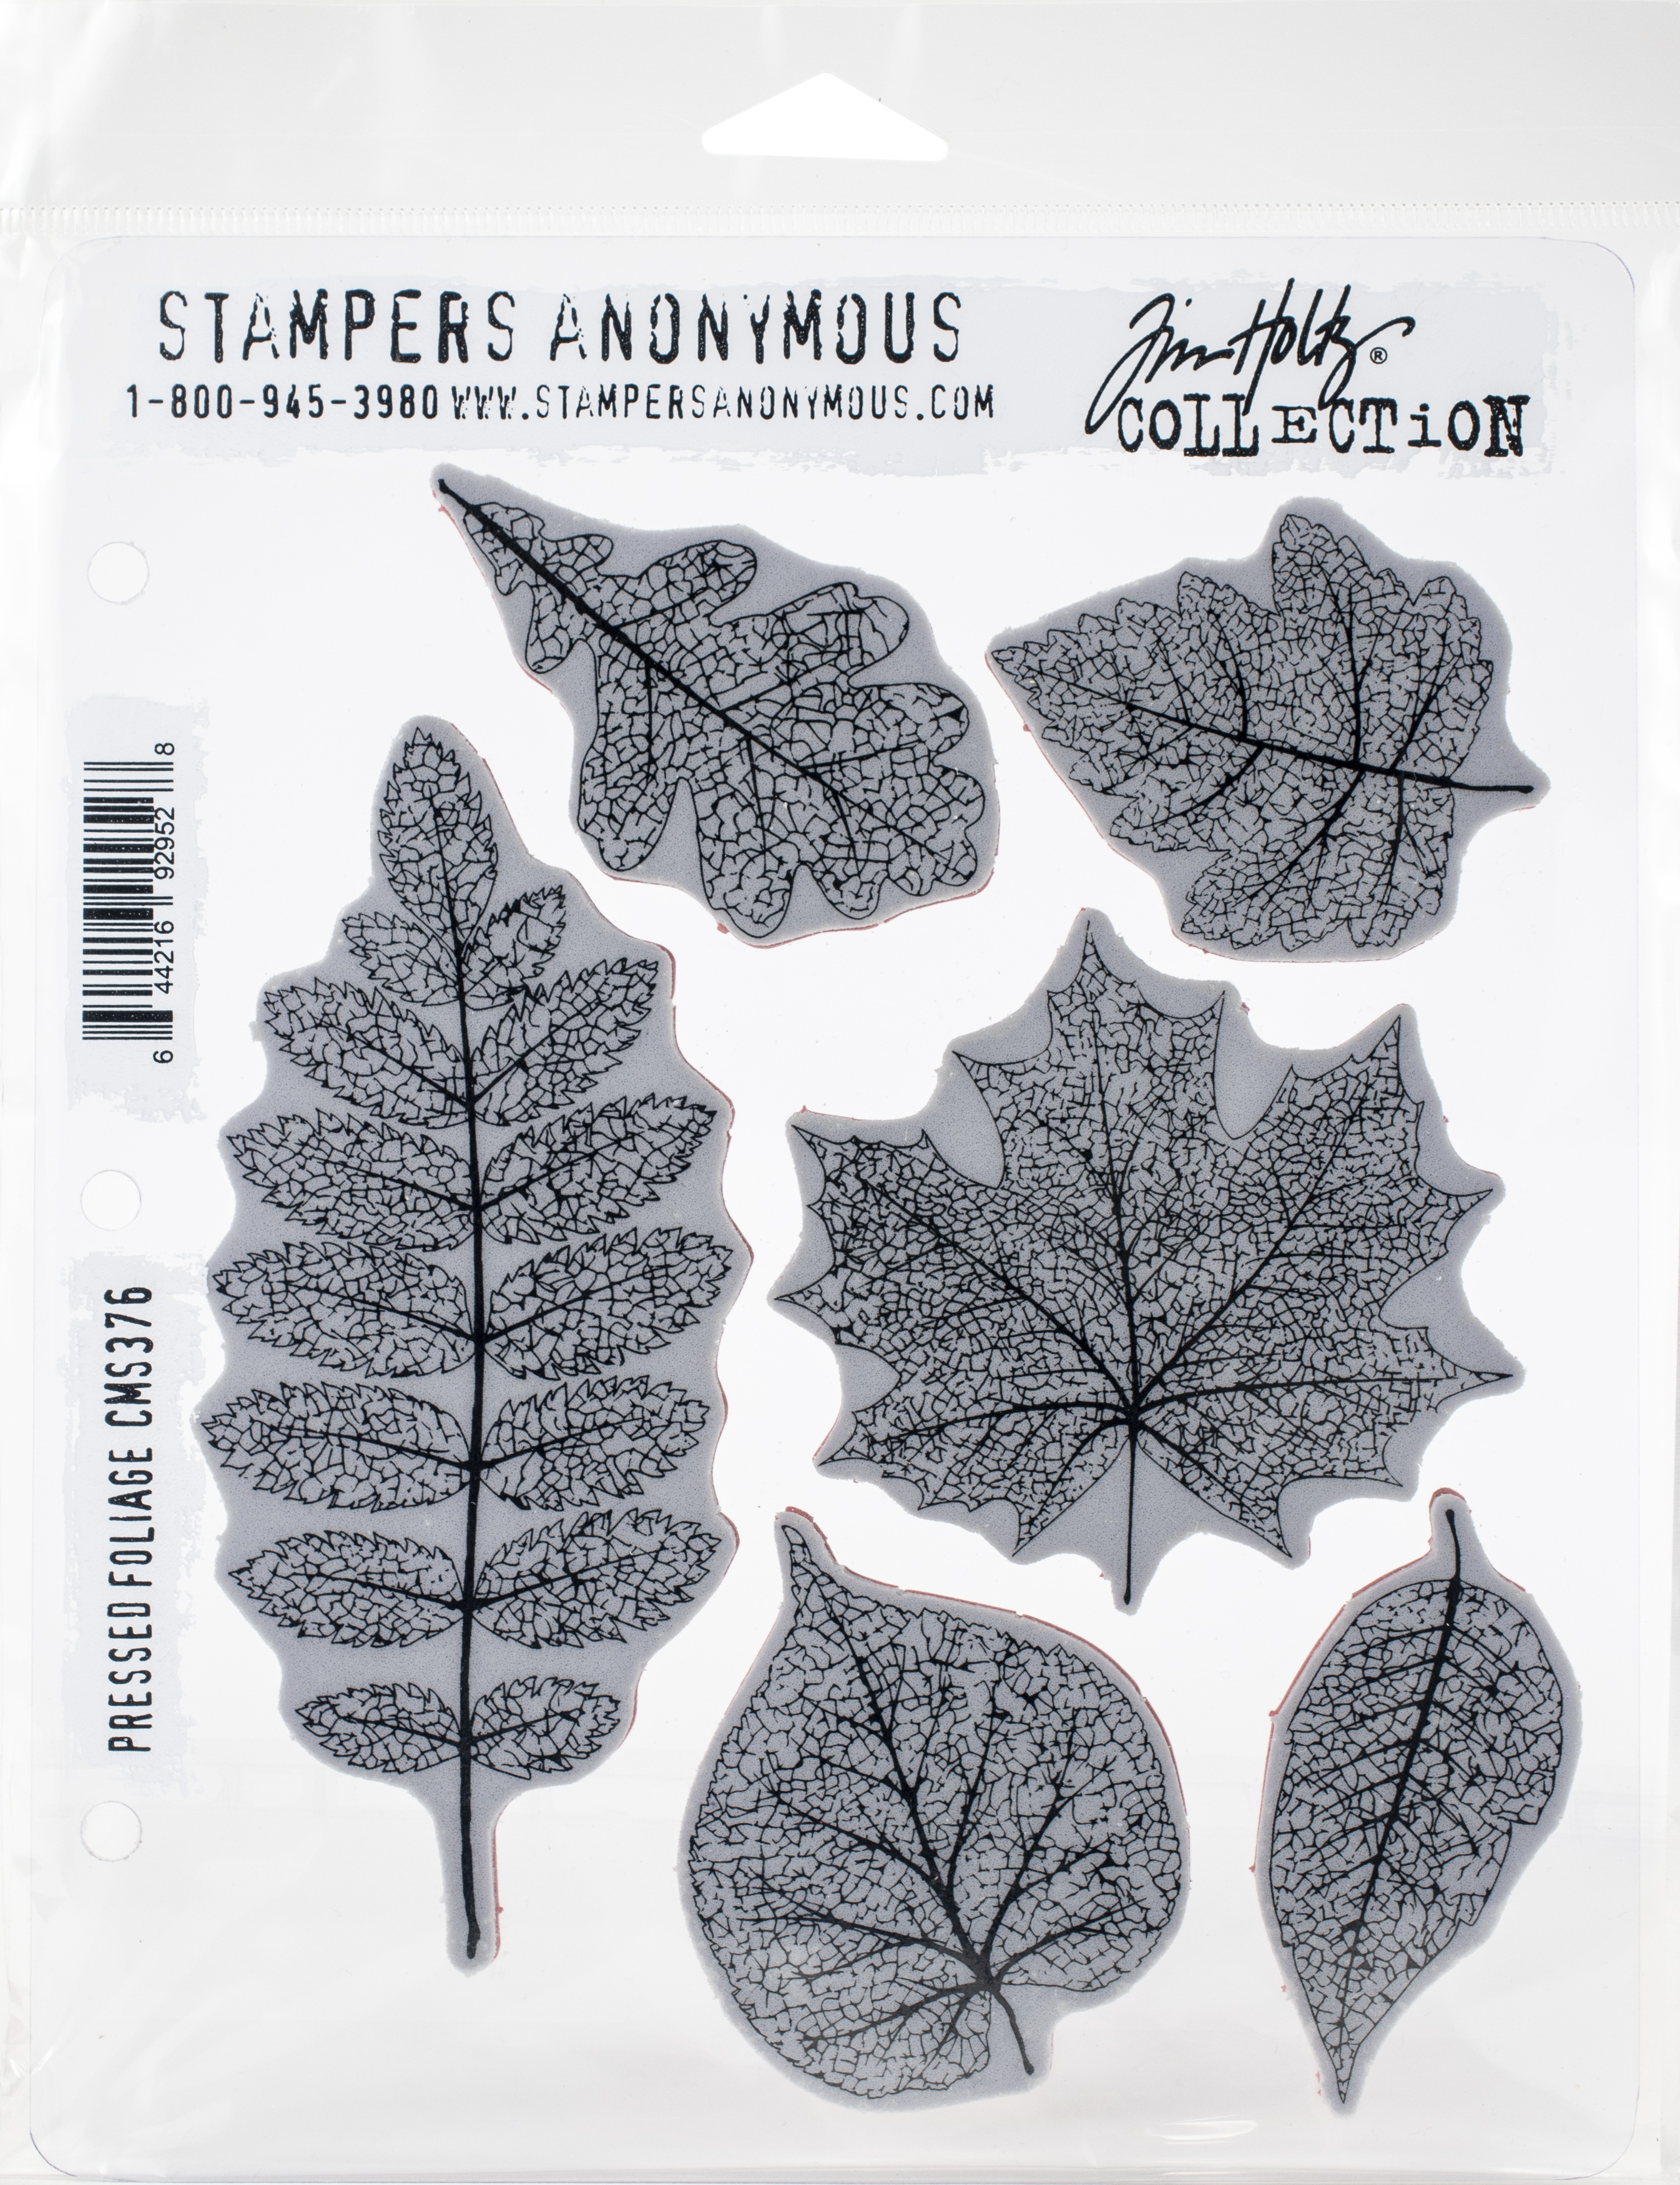 Tim Holtz Cling Stamps 7X8.5-Pressed Foliage